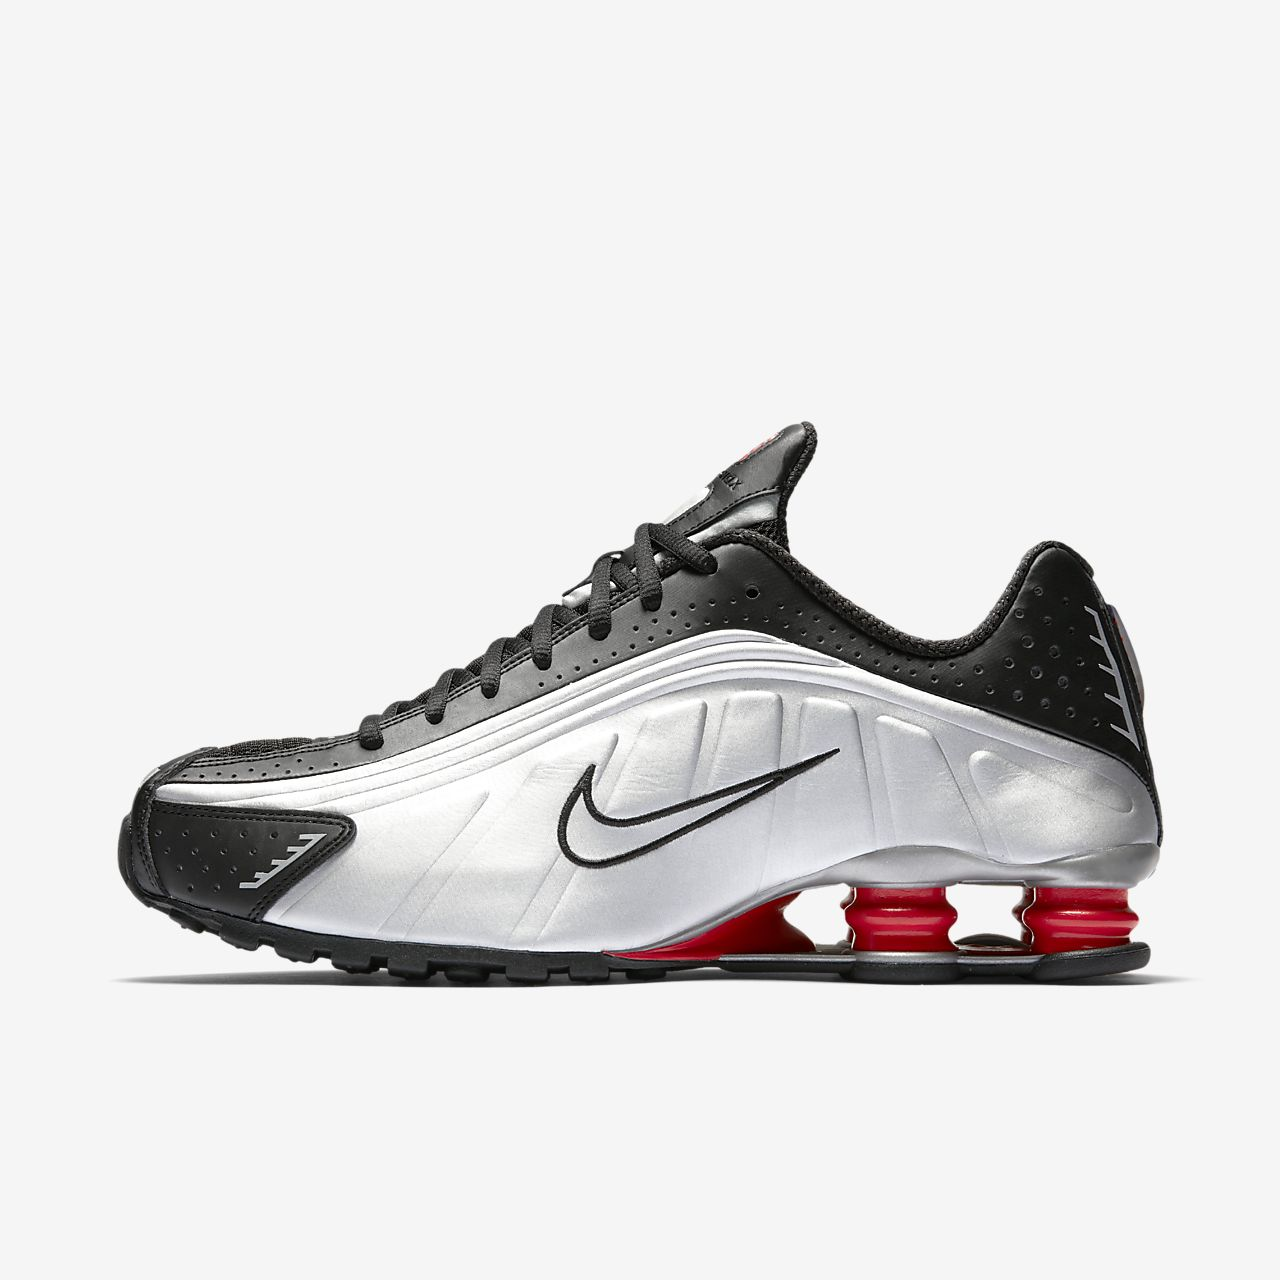 the best attitude 7579d a2cb3 Low Resolution Chaussure Nike Shox R4 Chaussure Nike Shox R4